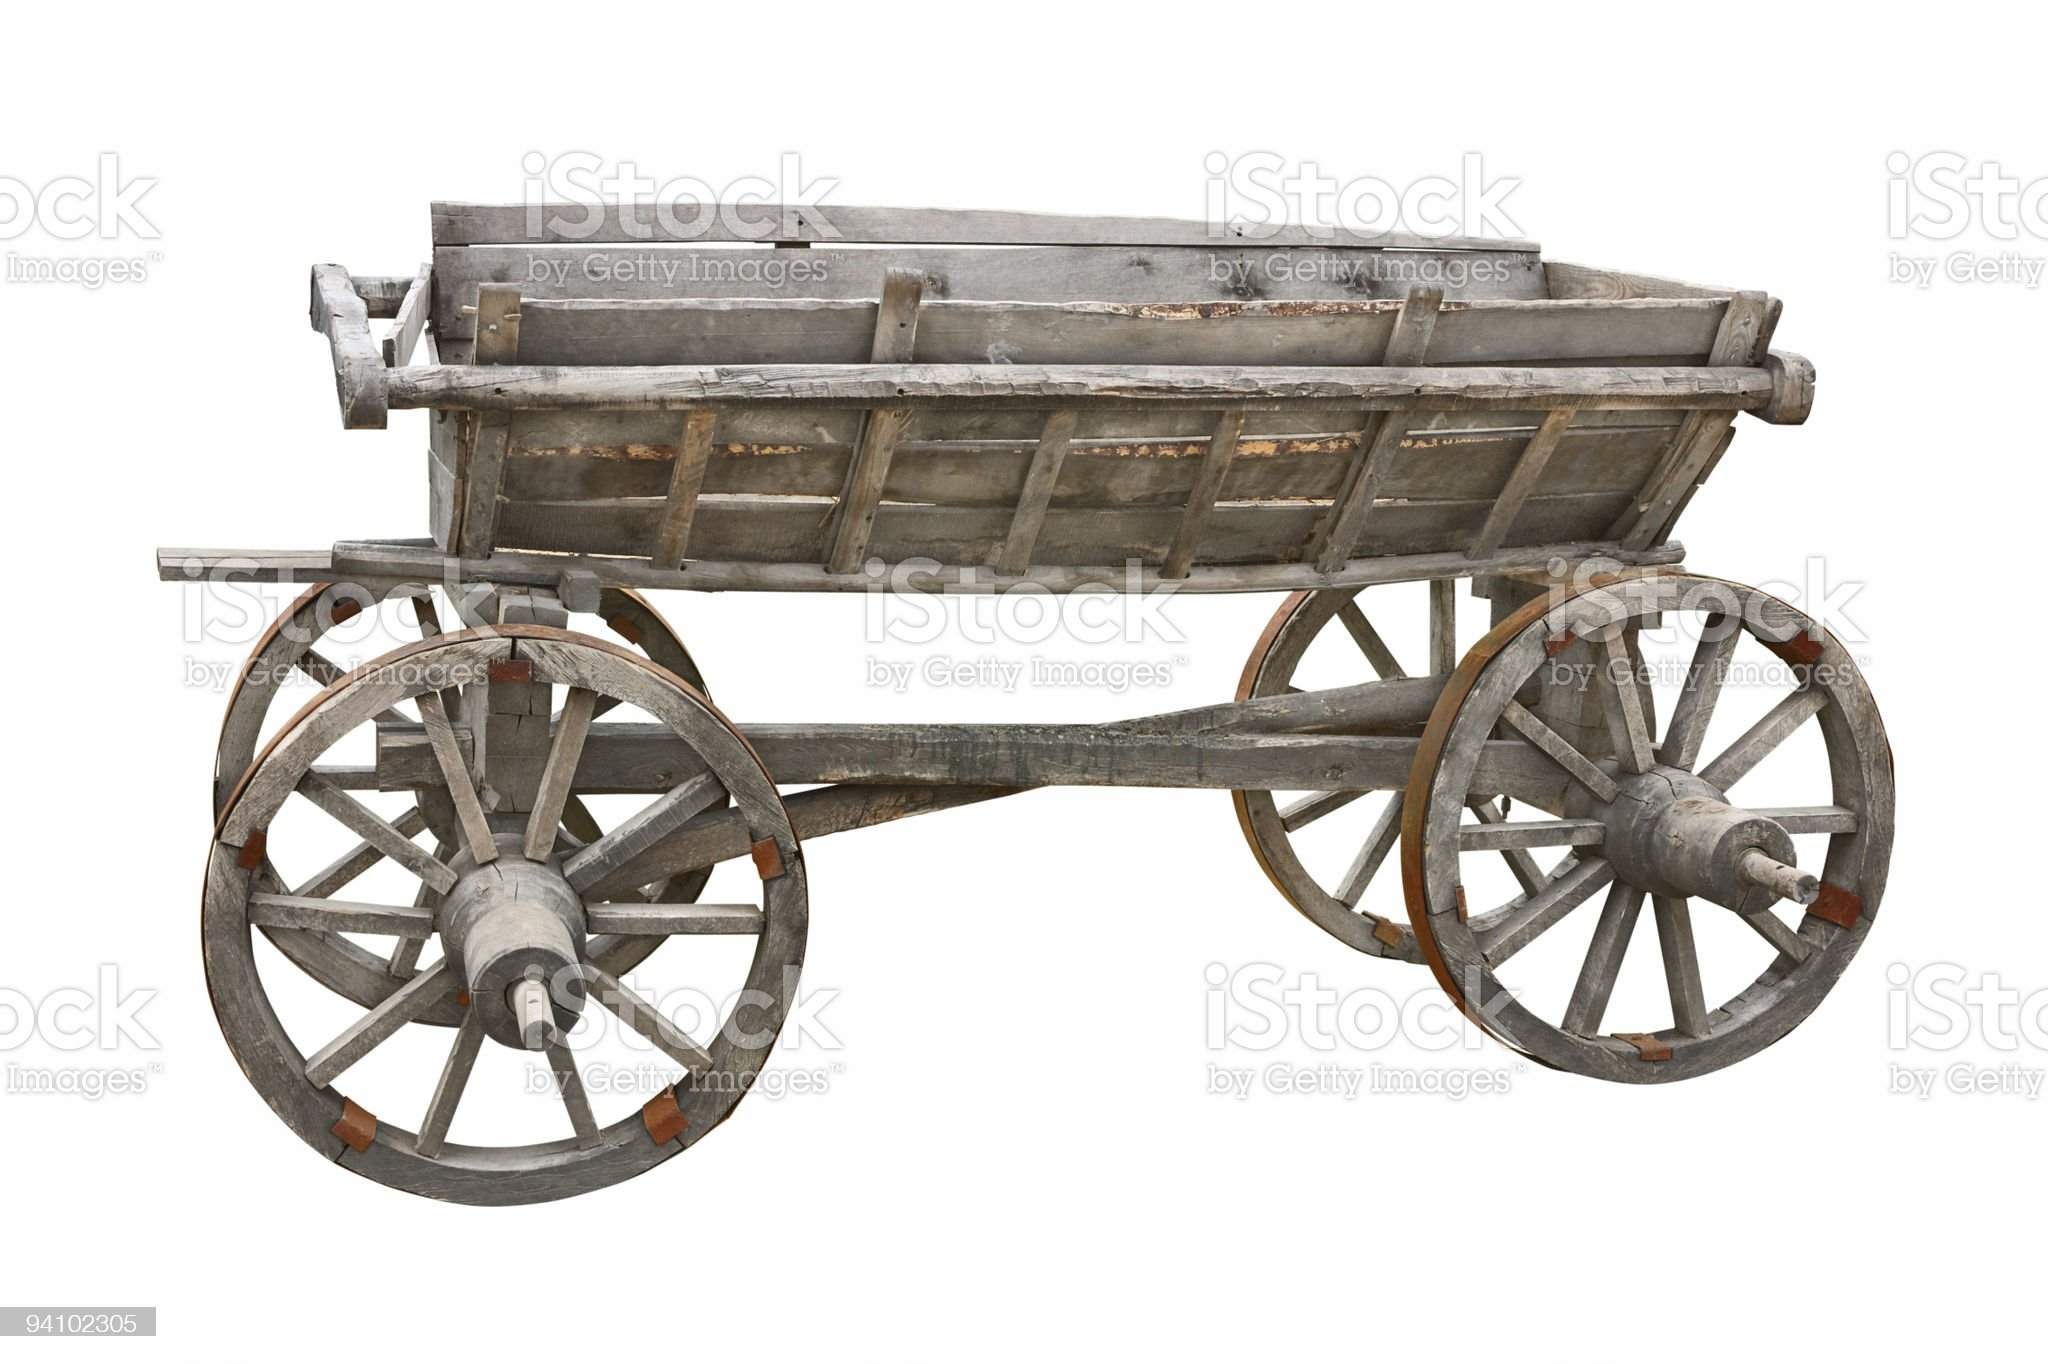 Old wooden cart cutout royalty-free stock photo